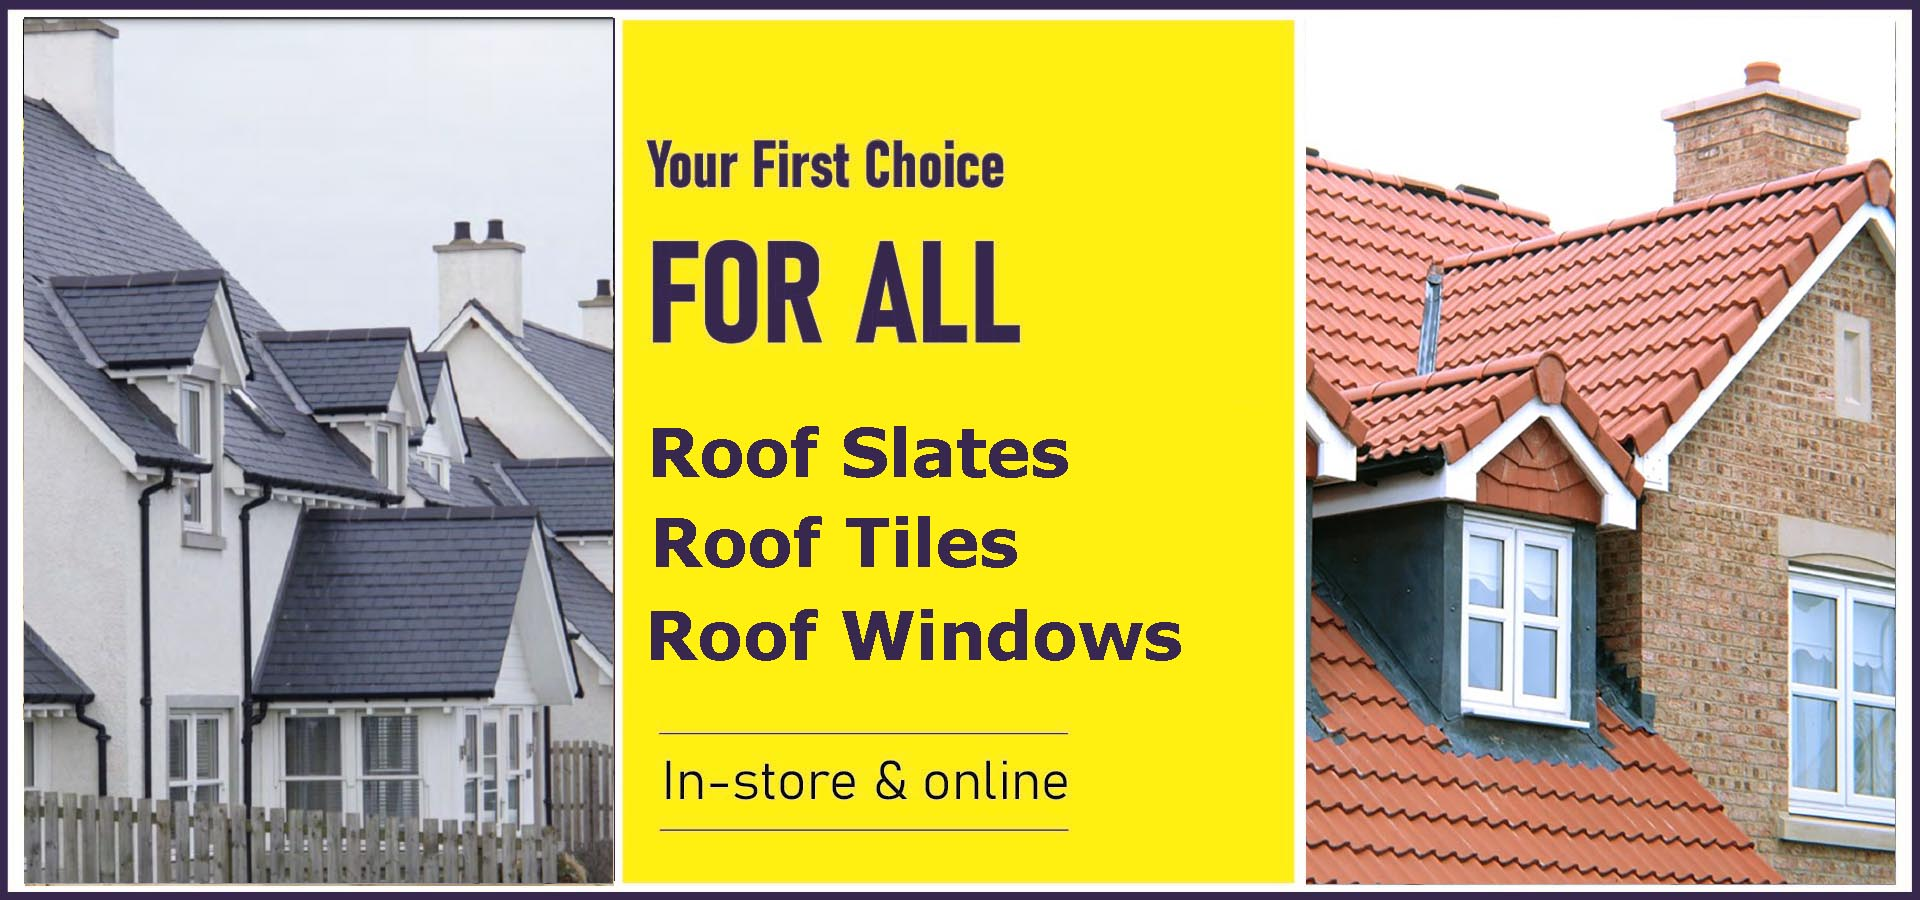 Roof Slates,Roof Tiles, Roof Windows